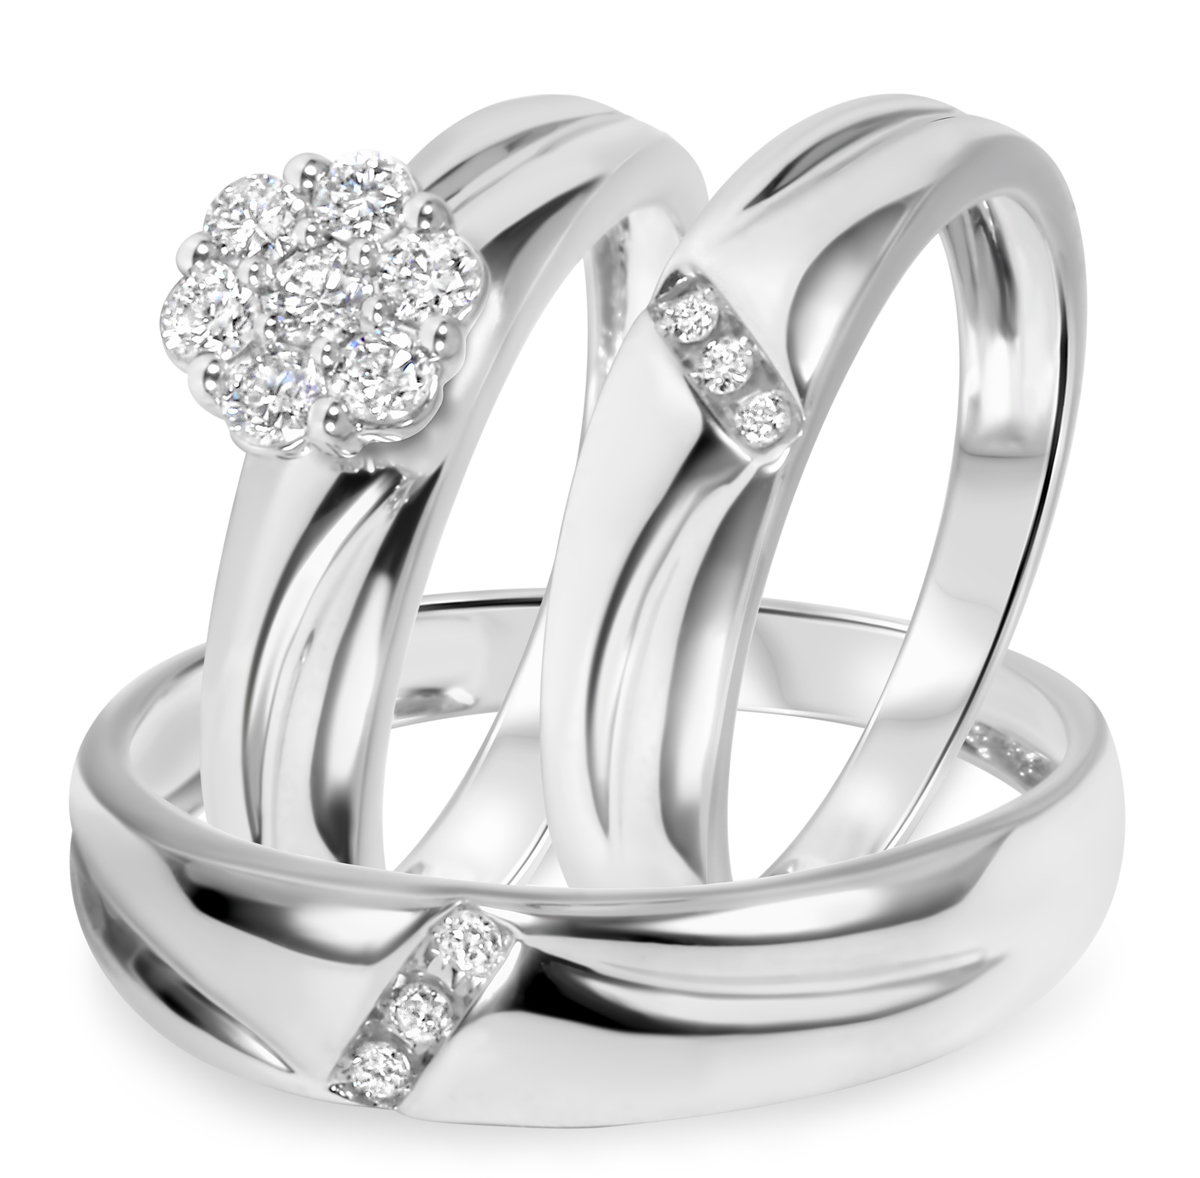 tw diamond trio matching wedding ring set 14k white gold my trio rings bt539w14k - White Gold Wedding Rings Sets